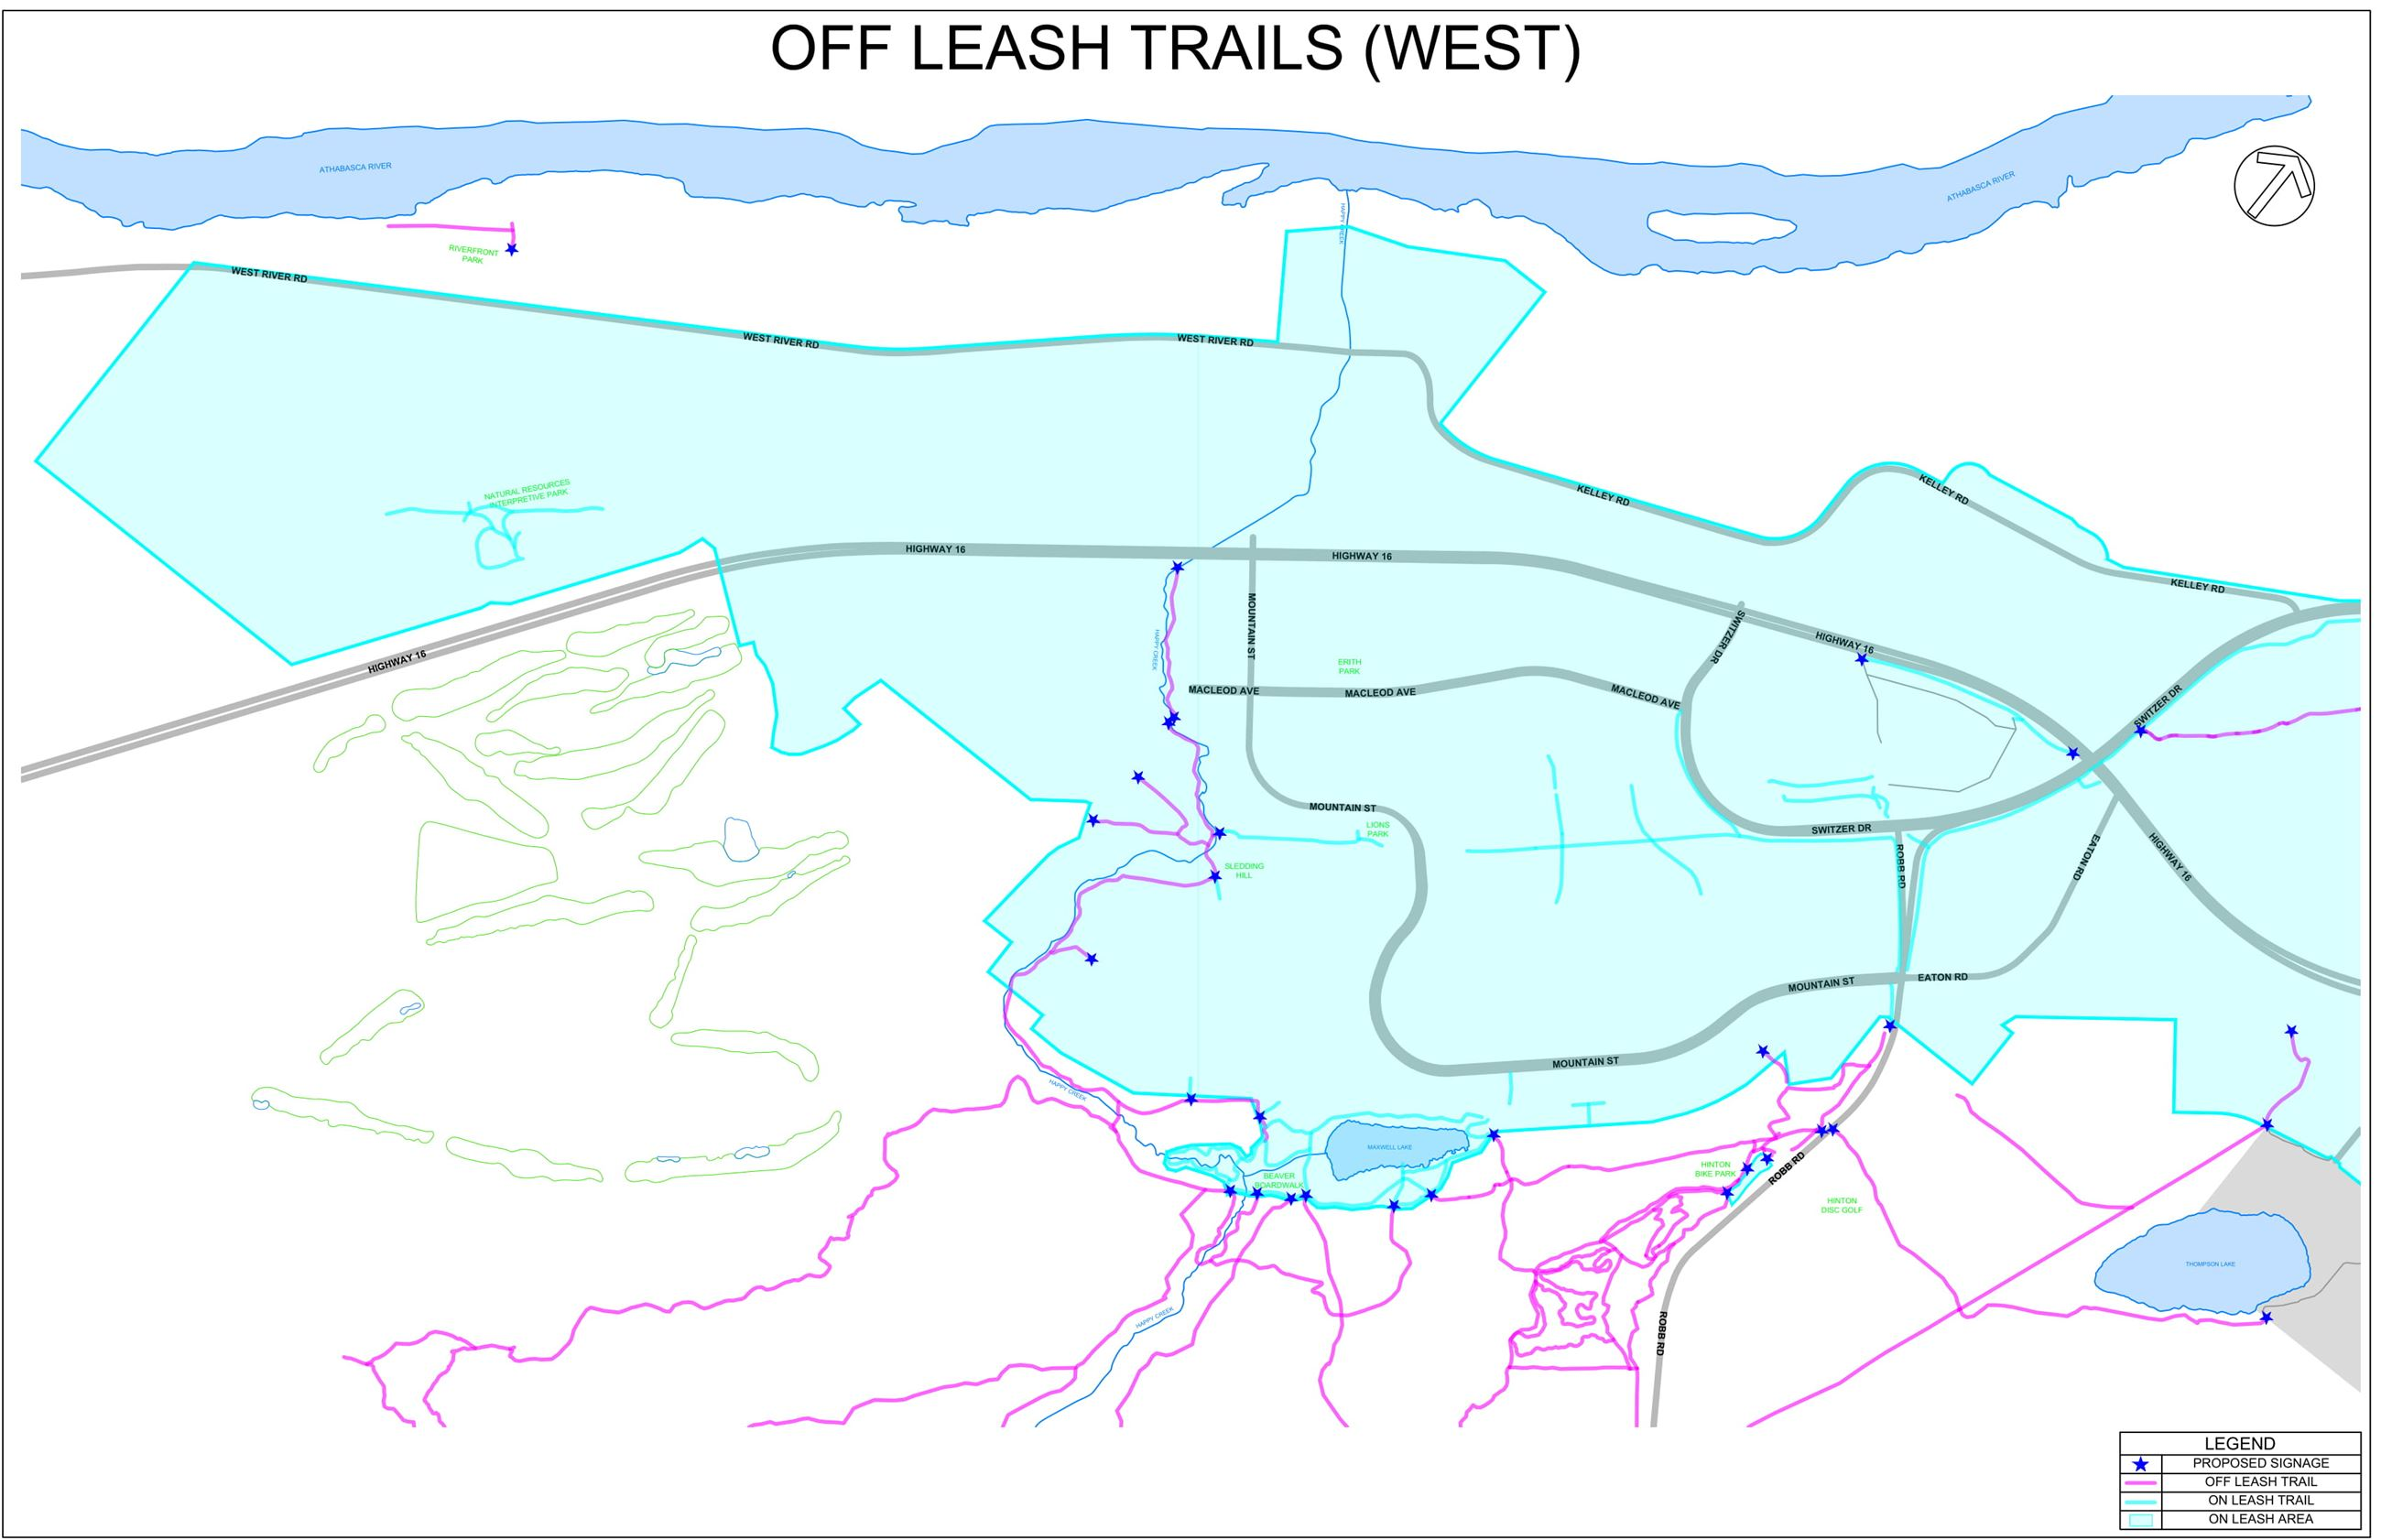 2018 06 11 Off Leash Areas-West 1-1